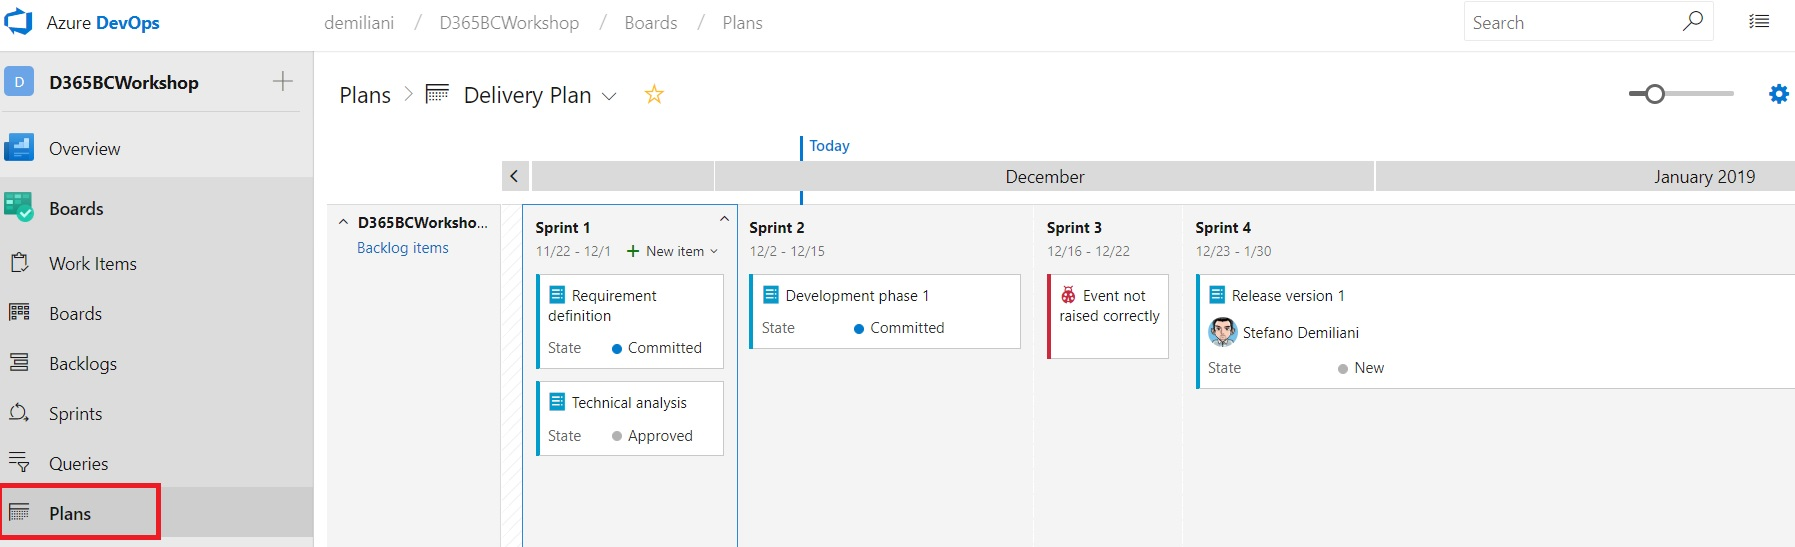 Using Azure Devops For Managing Your Dynamics 365 Business Central Projects Stefano Demiliani